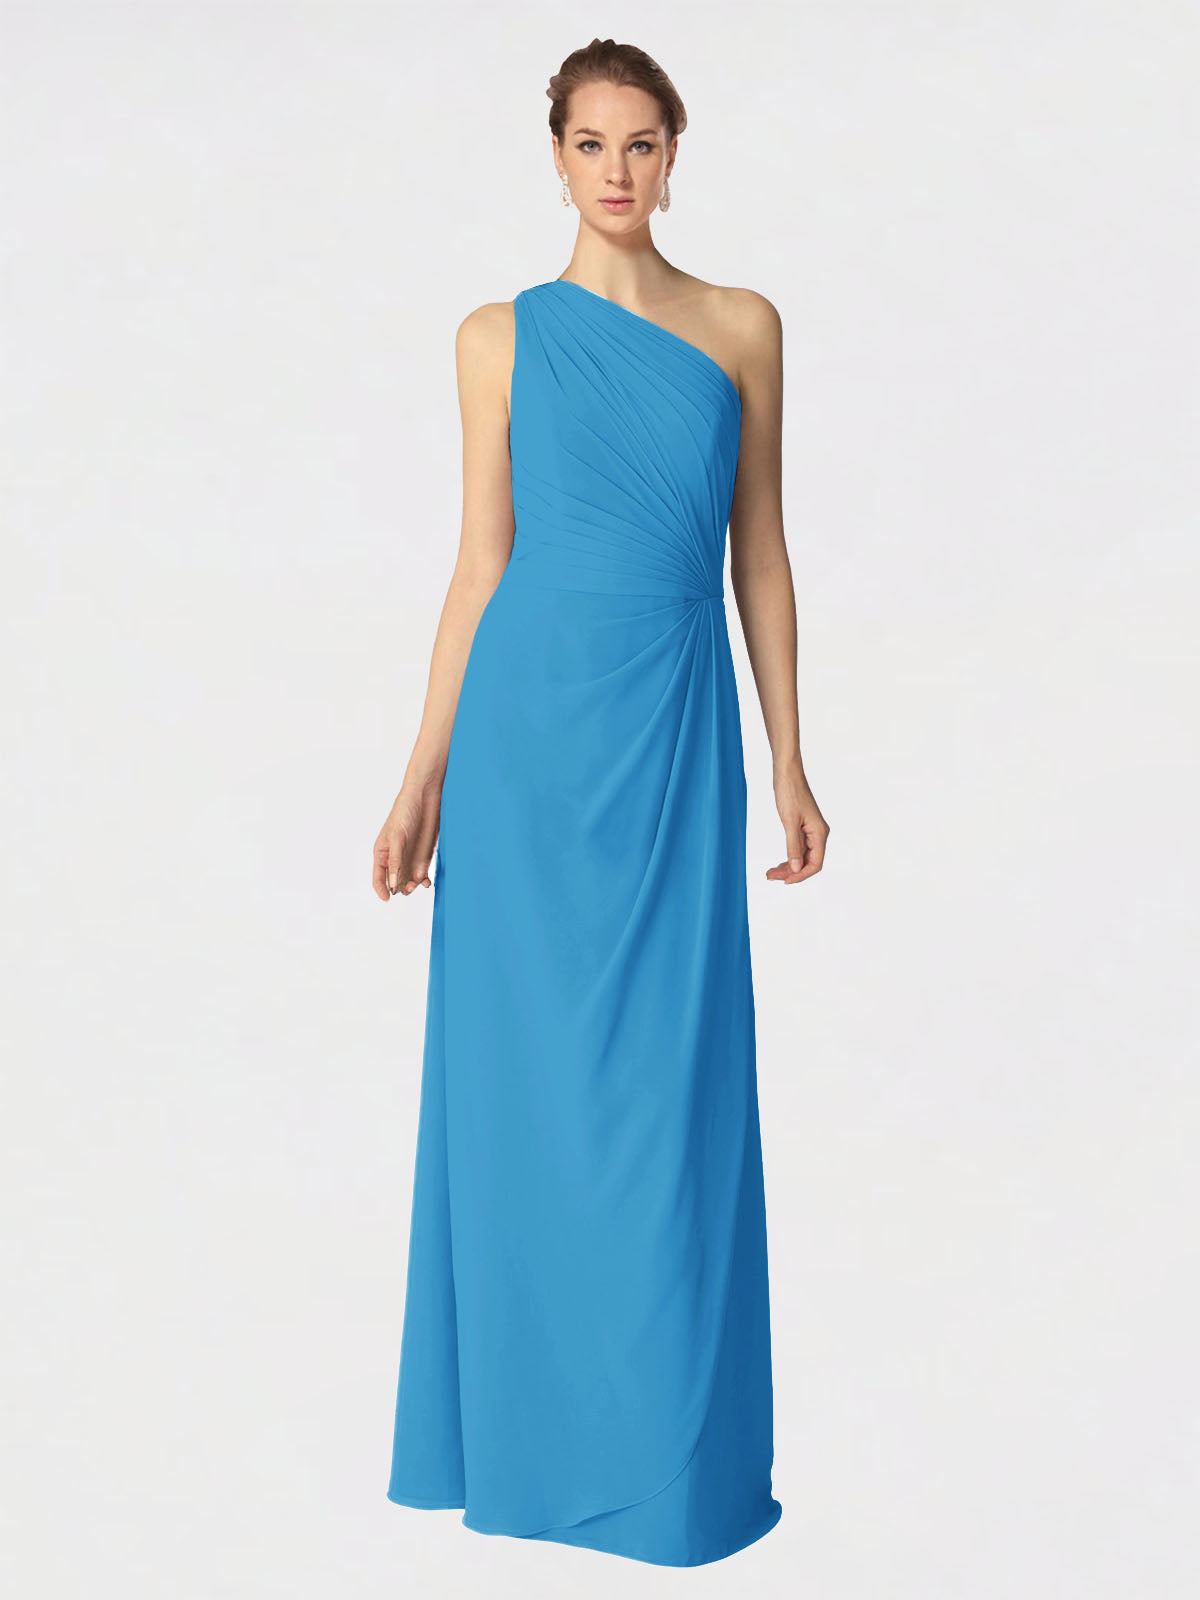 Long A-Line One Shoulder Sleeveless Peacock Blue Chiffon Bridesmaid Dress Aurora